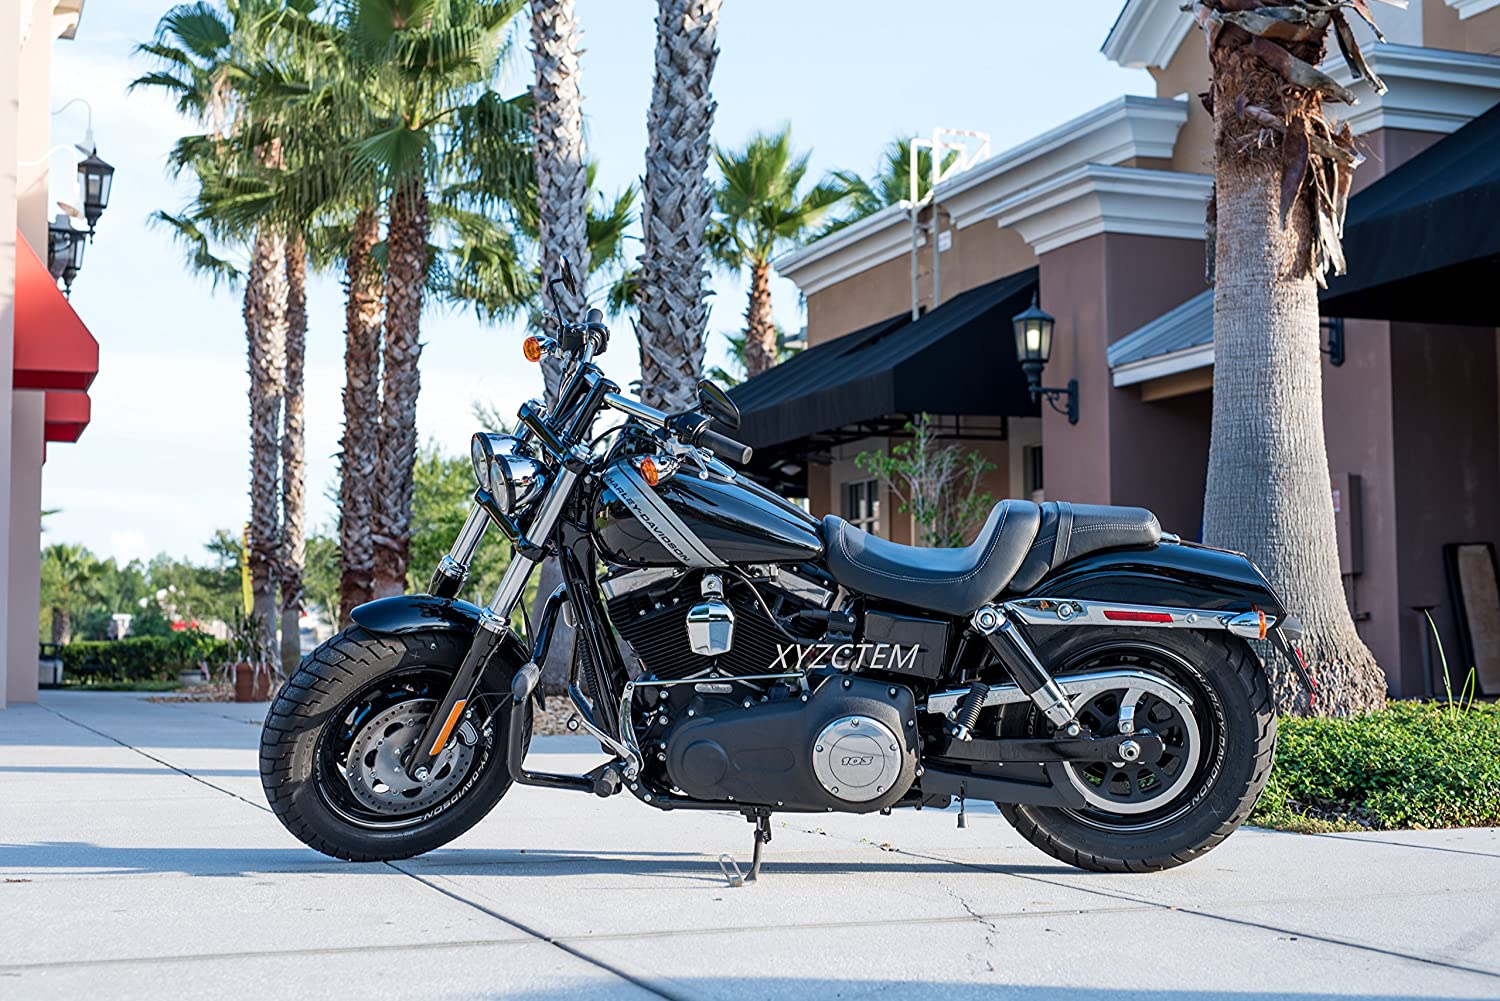 XYZCTEM All Weather Black XXXL Large Waterproof Outdoor Protects Fits up to 118 inch for Harley Davidson Suzuki,Yamaha and More New Generation Motorcycle cover Honda